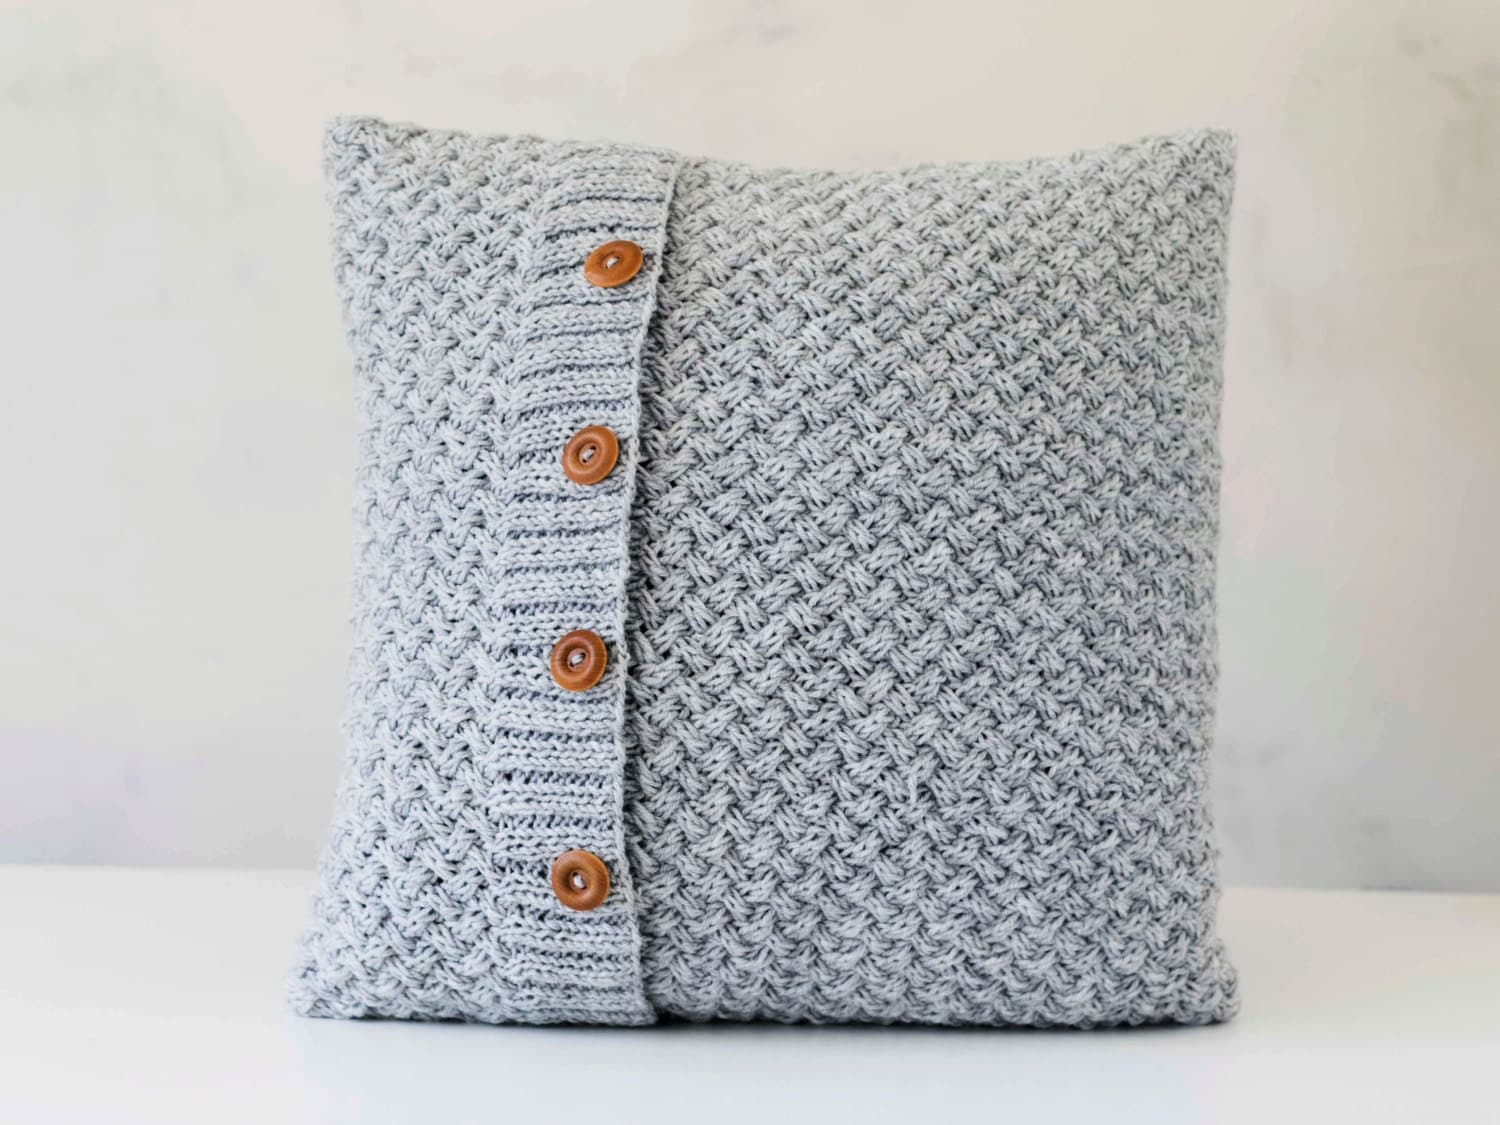 Knitting Patterns For Cushion Covers : Knit pillow grey knitted chunky pillow scandinavian style